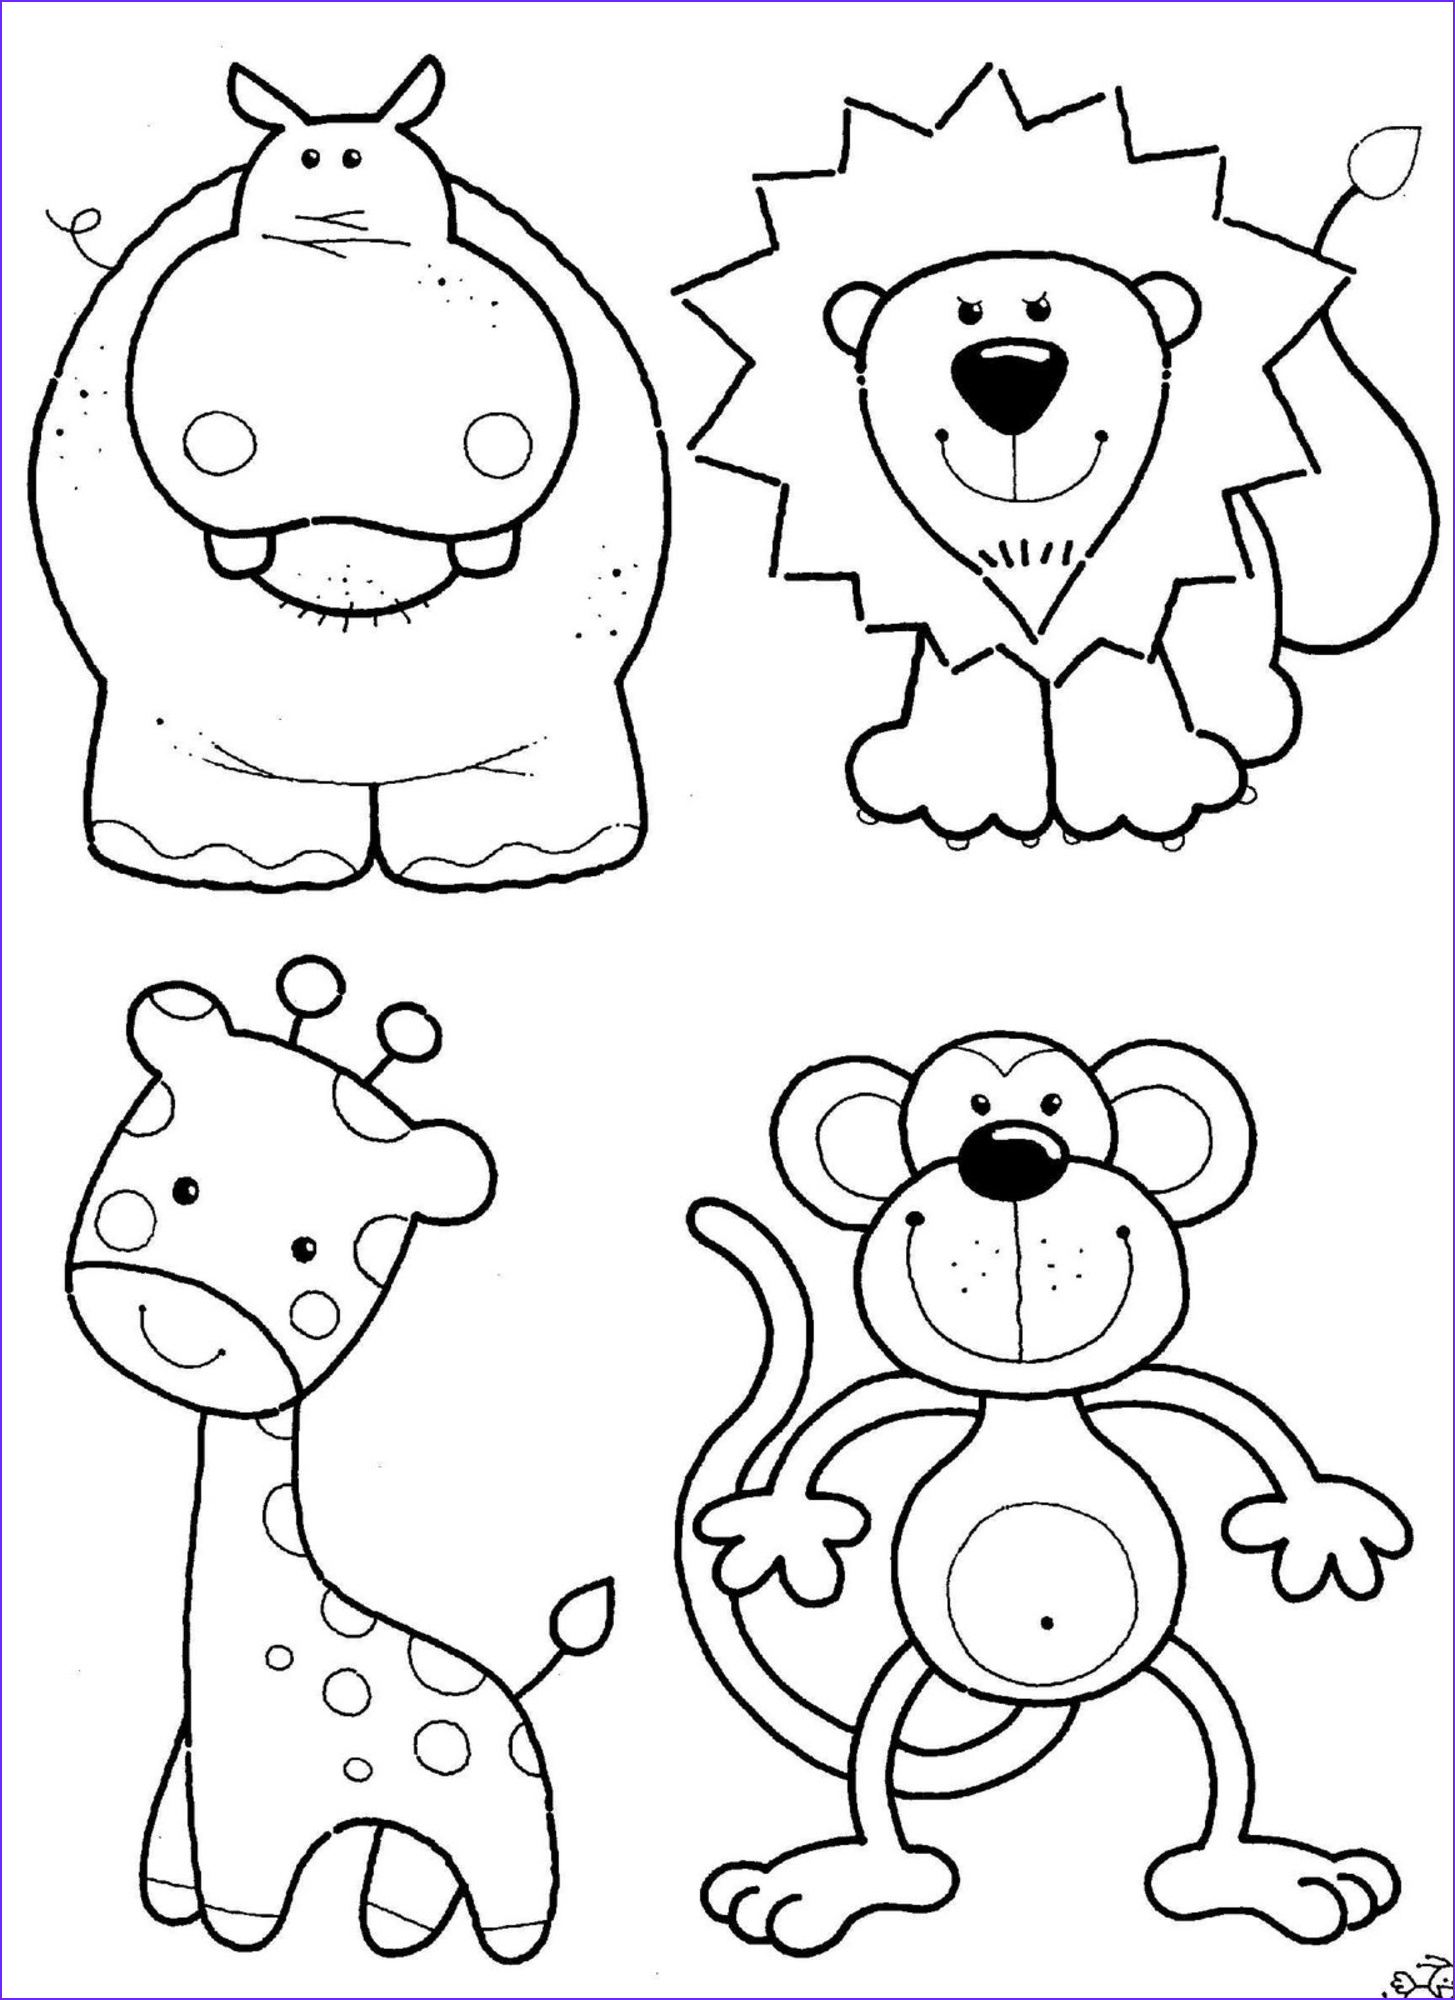 Animal Coloring Pages Printable Beautiful Photography Coloring now Blog Archive Coloring Pages Animals